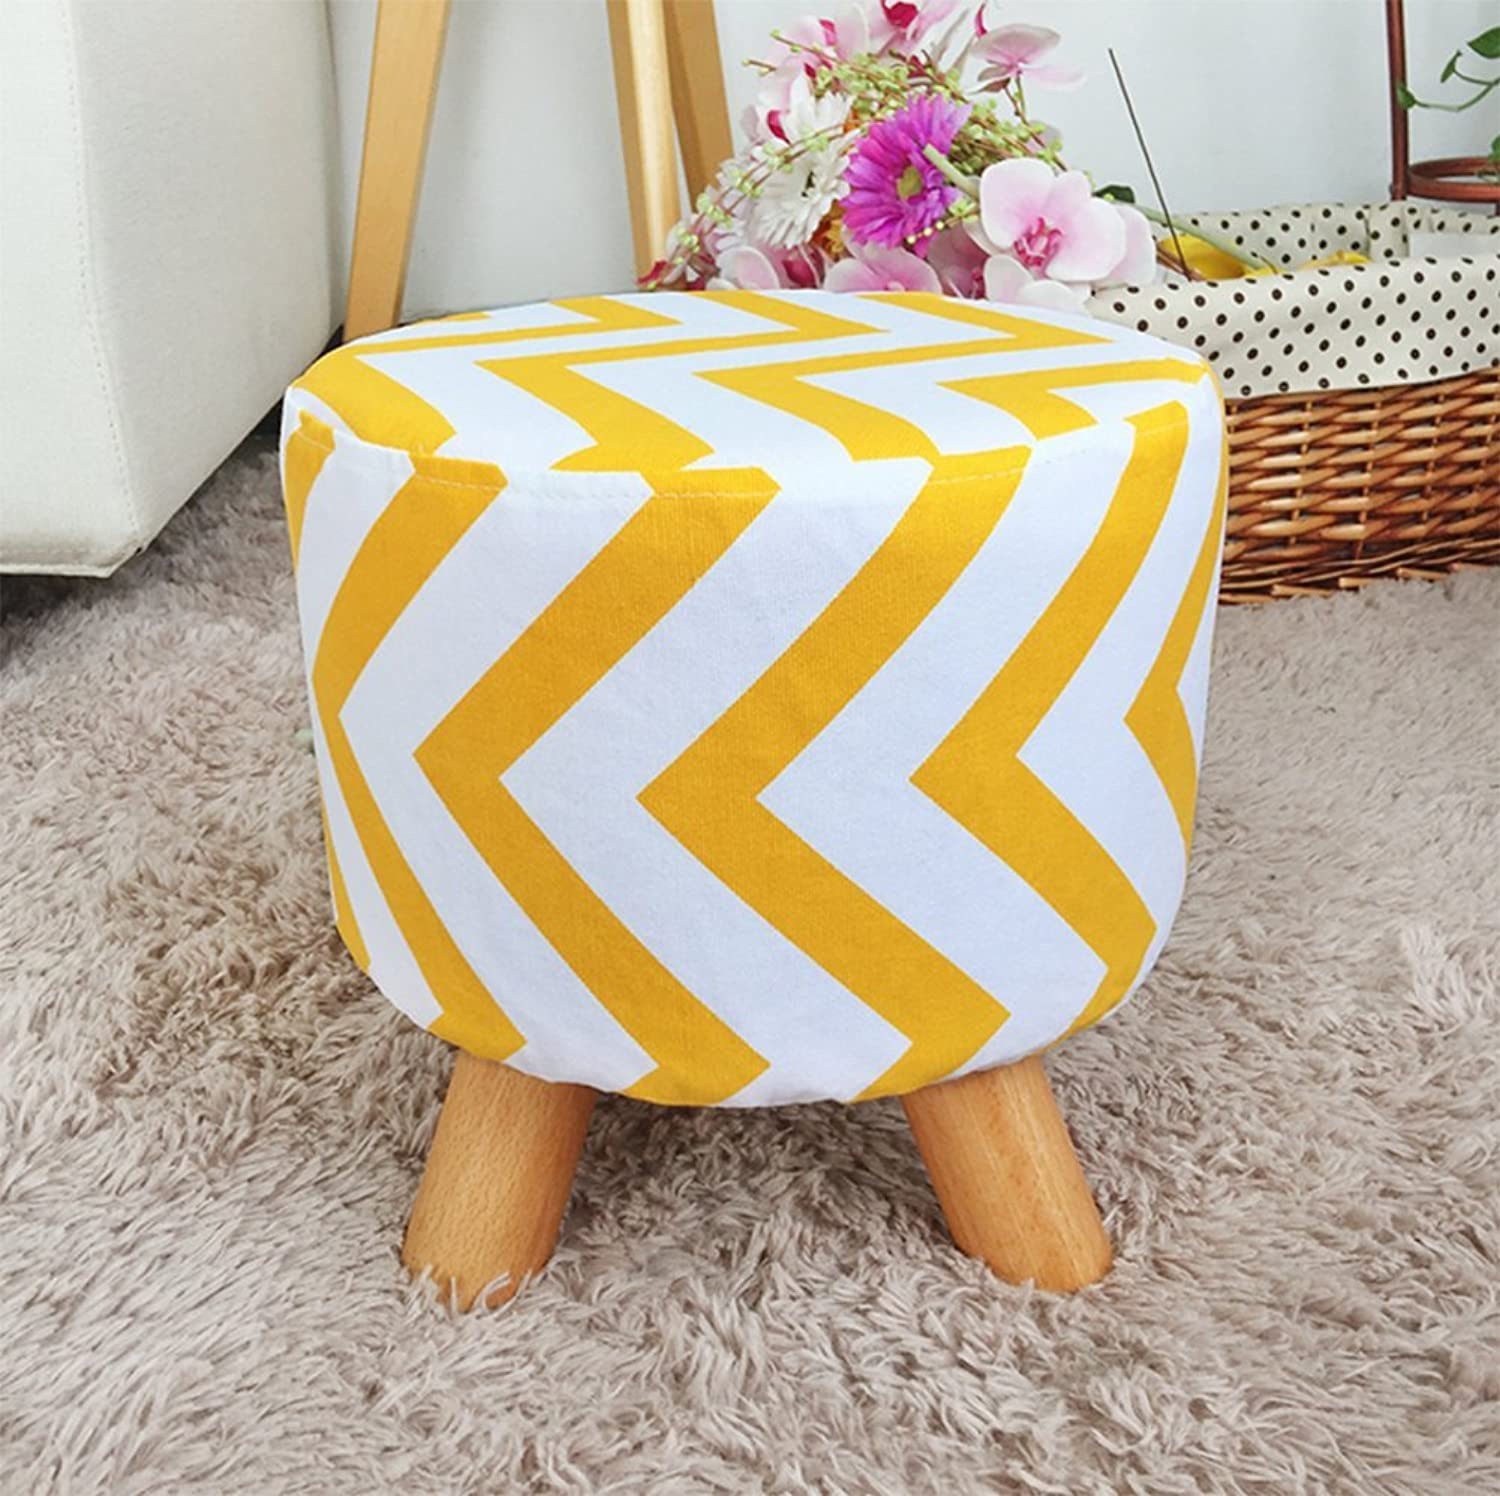 Cloth Small Stool, Creative Living Room Simple Stool, Sofa Stool Door Change shoes Bench Home Small Bench,Yellow